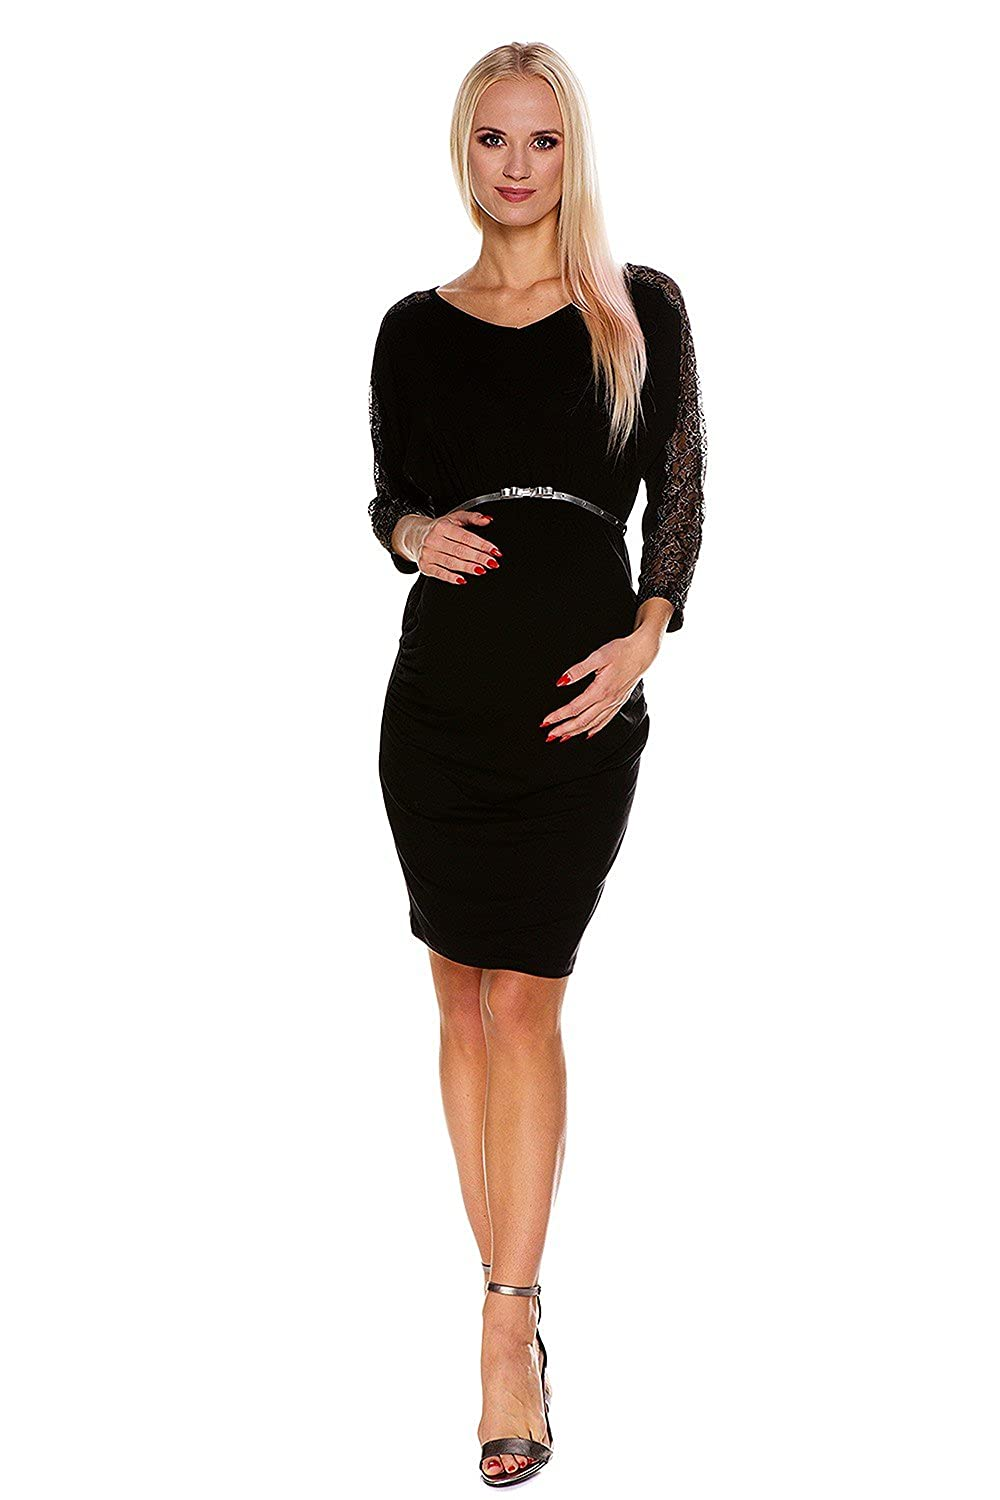 My Tummy Maternity Dress Camille Silver Elegant Chic Party Black